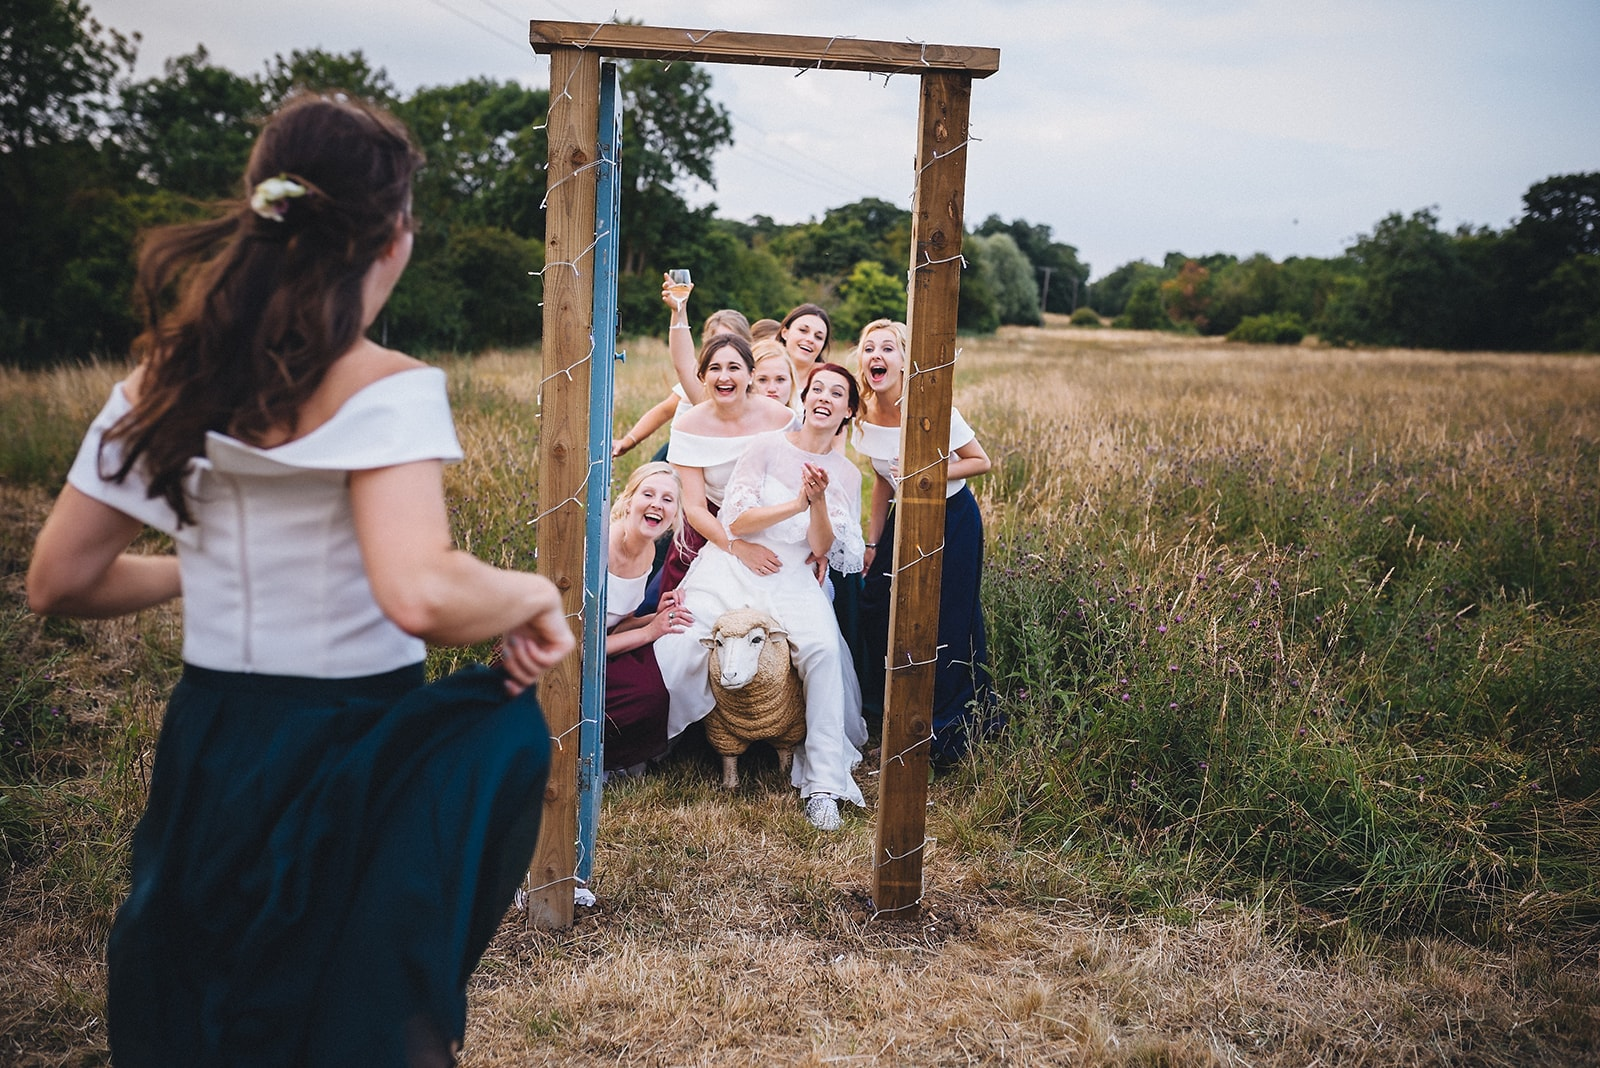 Bridesmaid runs to join the bride and bridesmaids in a field